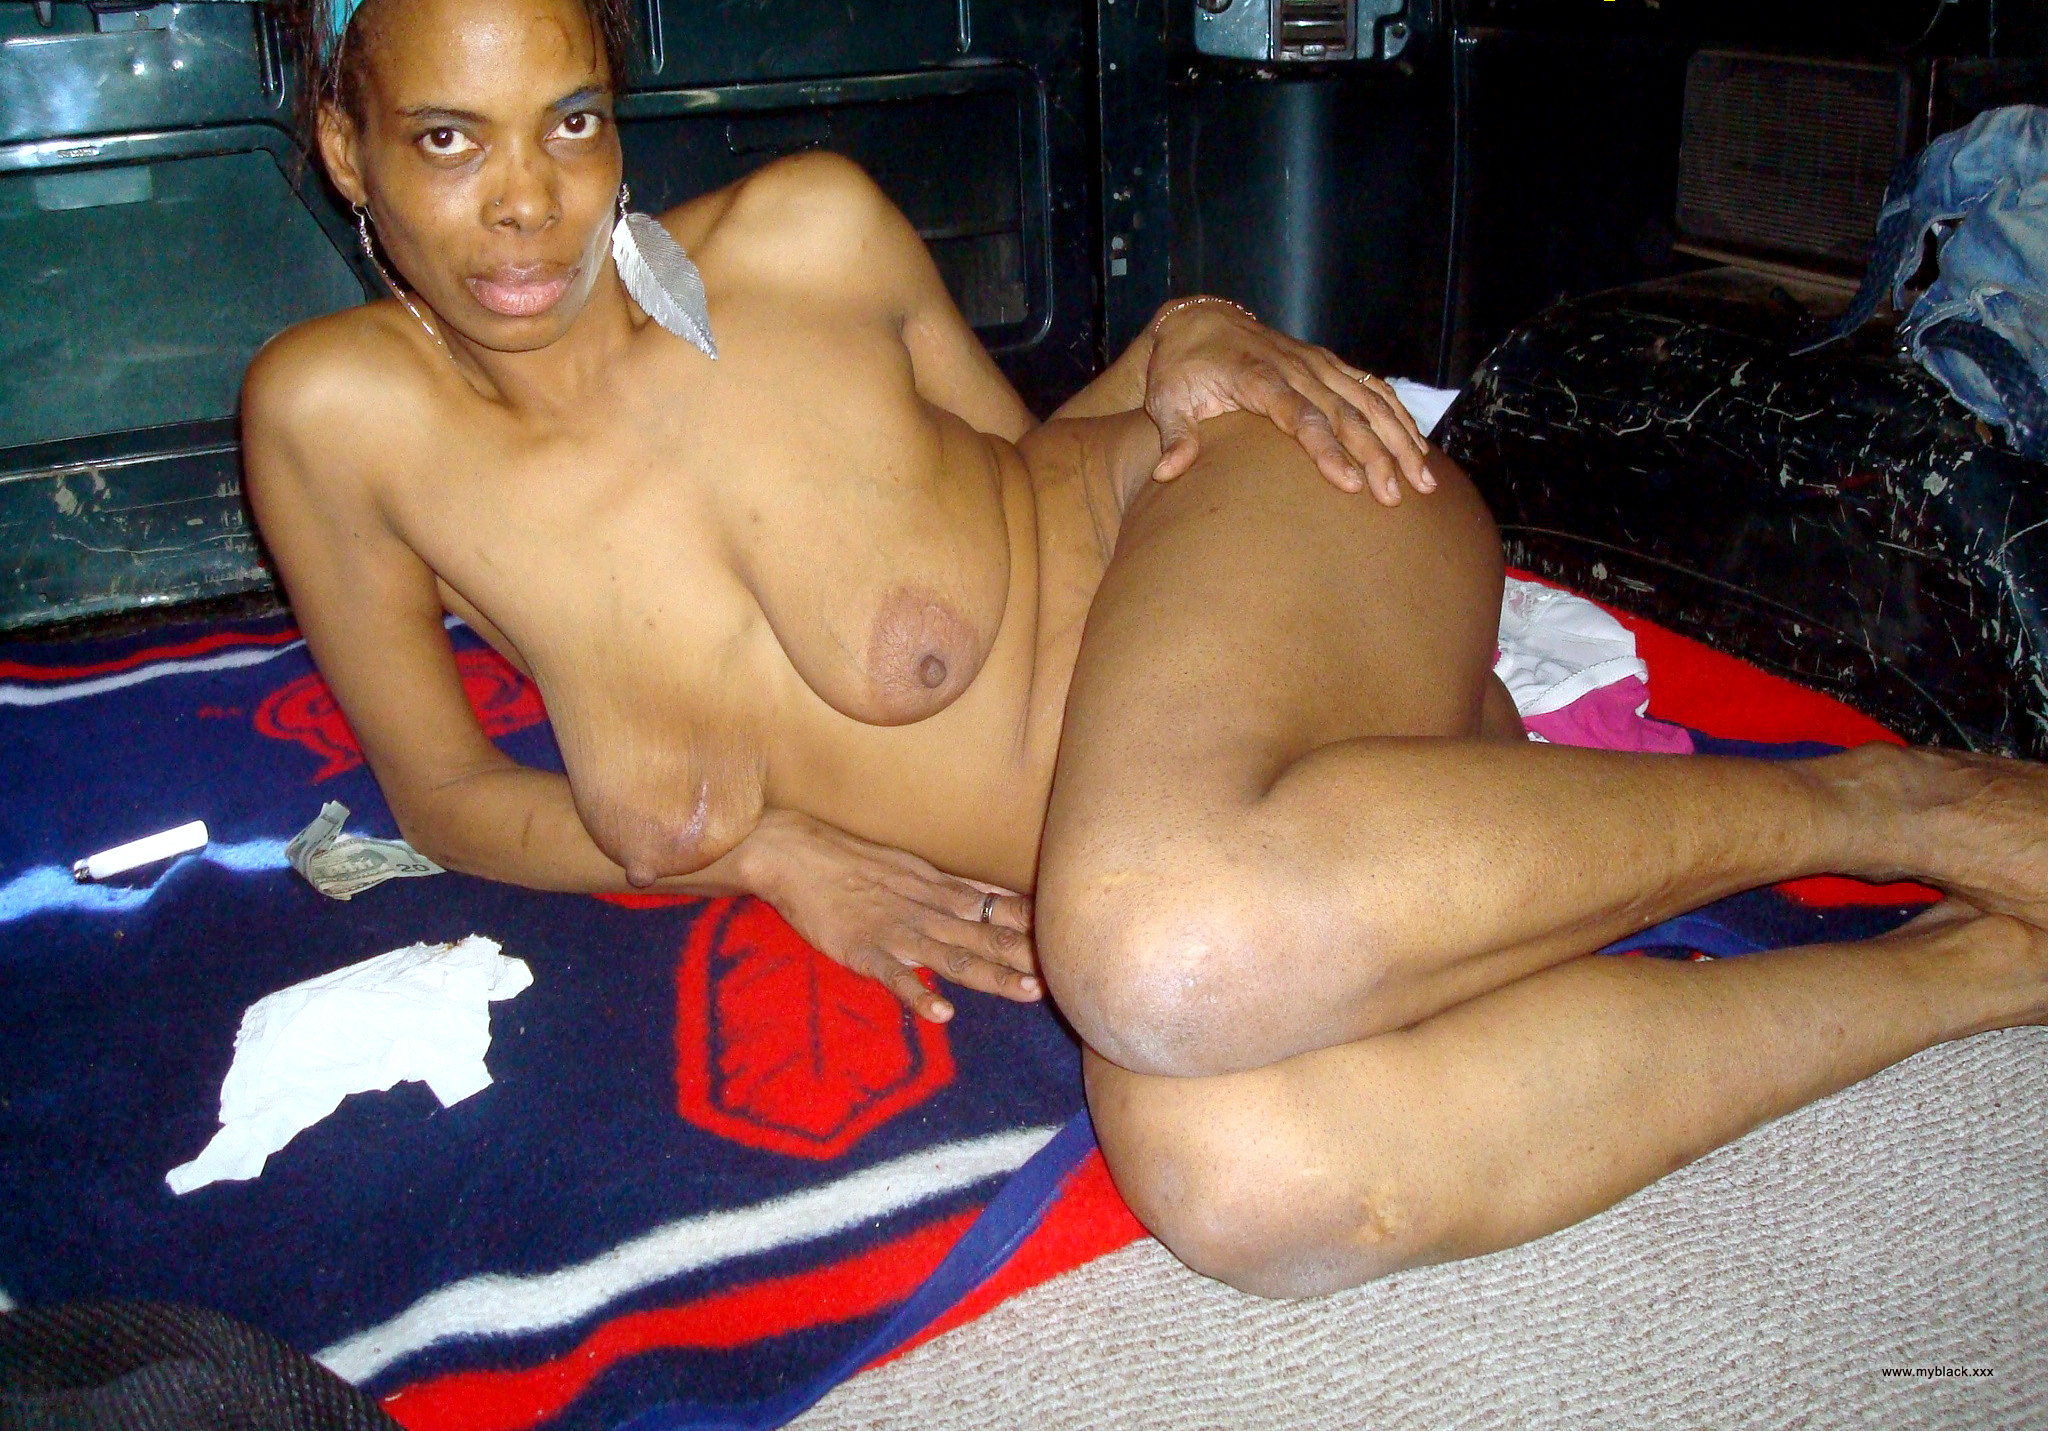 Beautiful granny ebony nude photos - Other